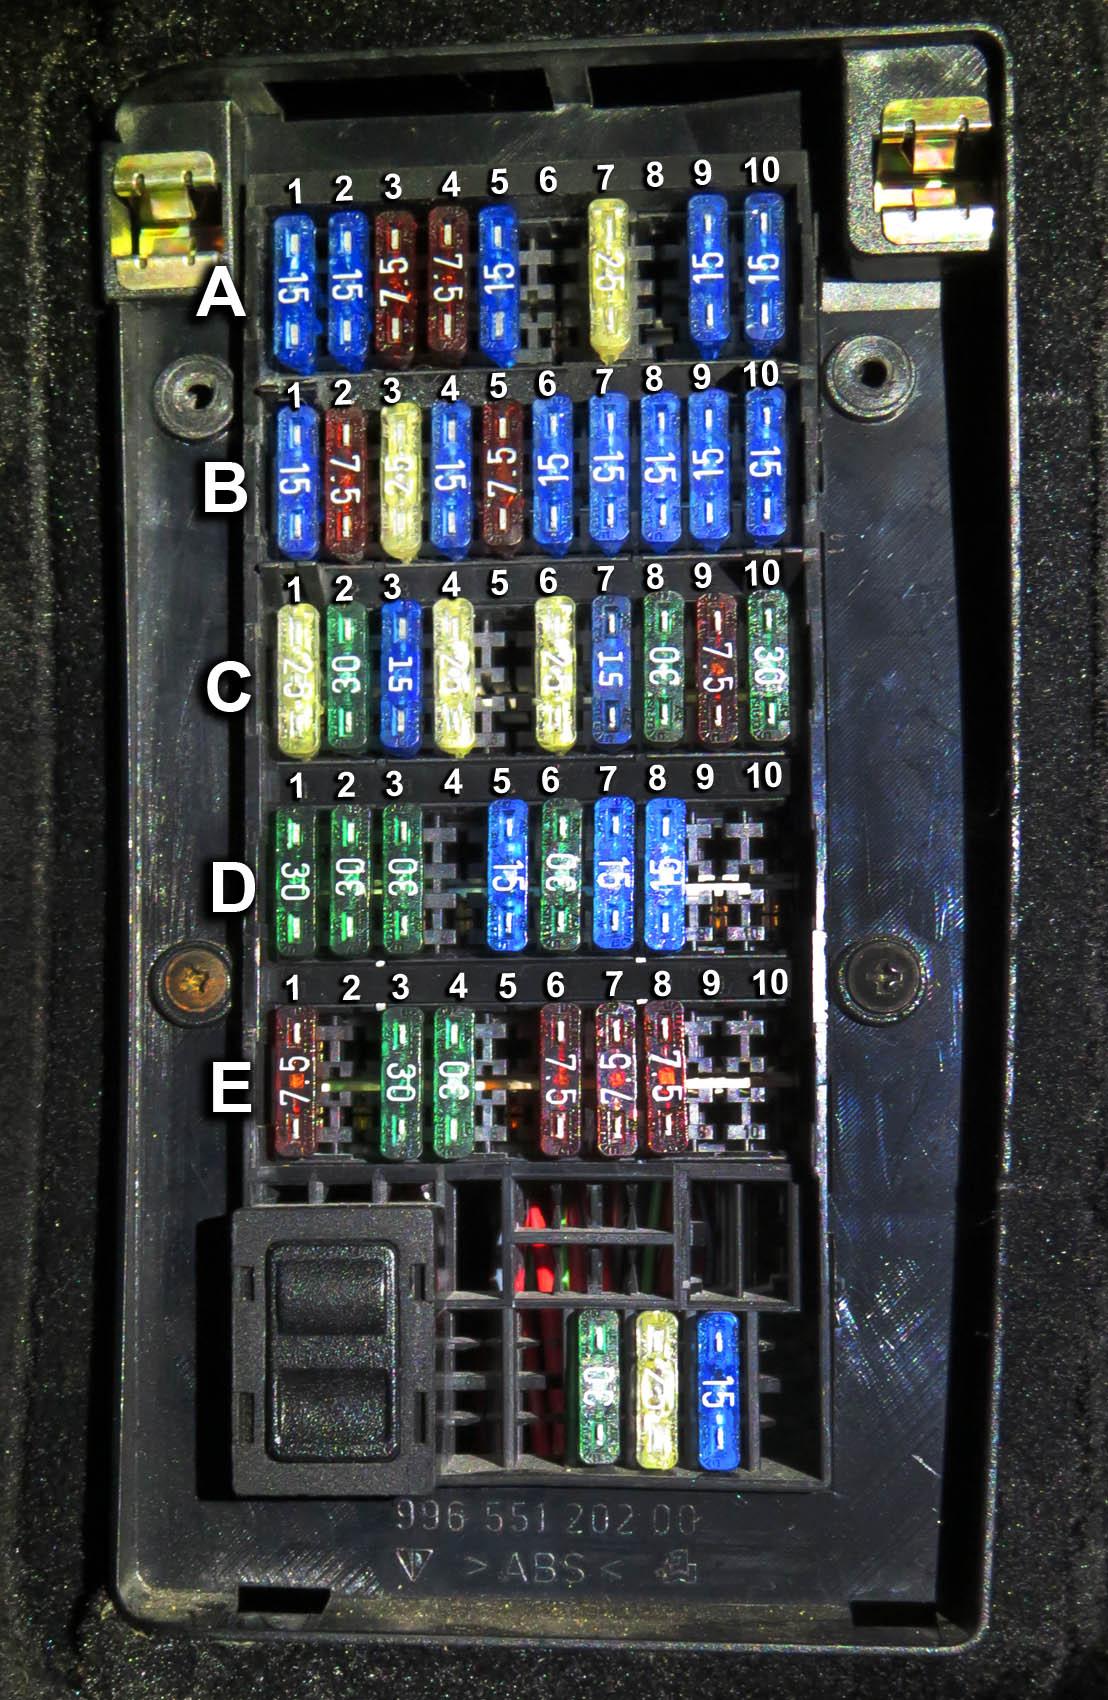 interior heater fan  blower not working no power 986 1998 boxster fuse panel diagram 1998 boxster fuse panel diagram 1998 boxster fuse panel diagram 1998 boxster fuse panel diagram